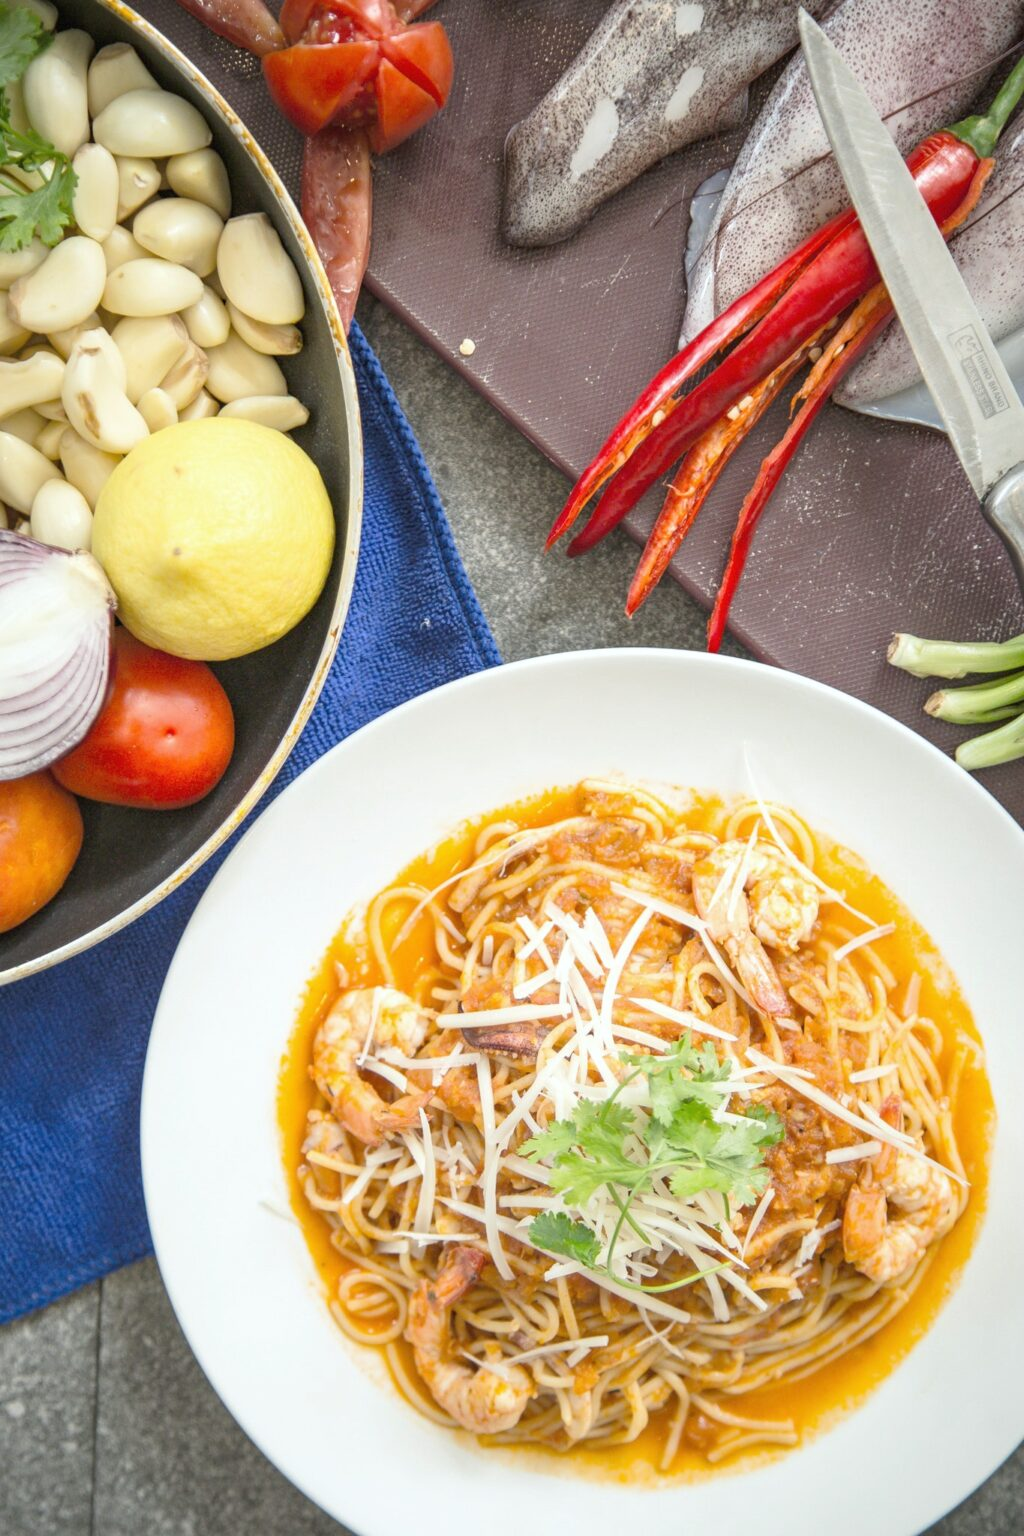 Shrimp pasta dish surrounded by ingredients to create dish.